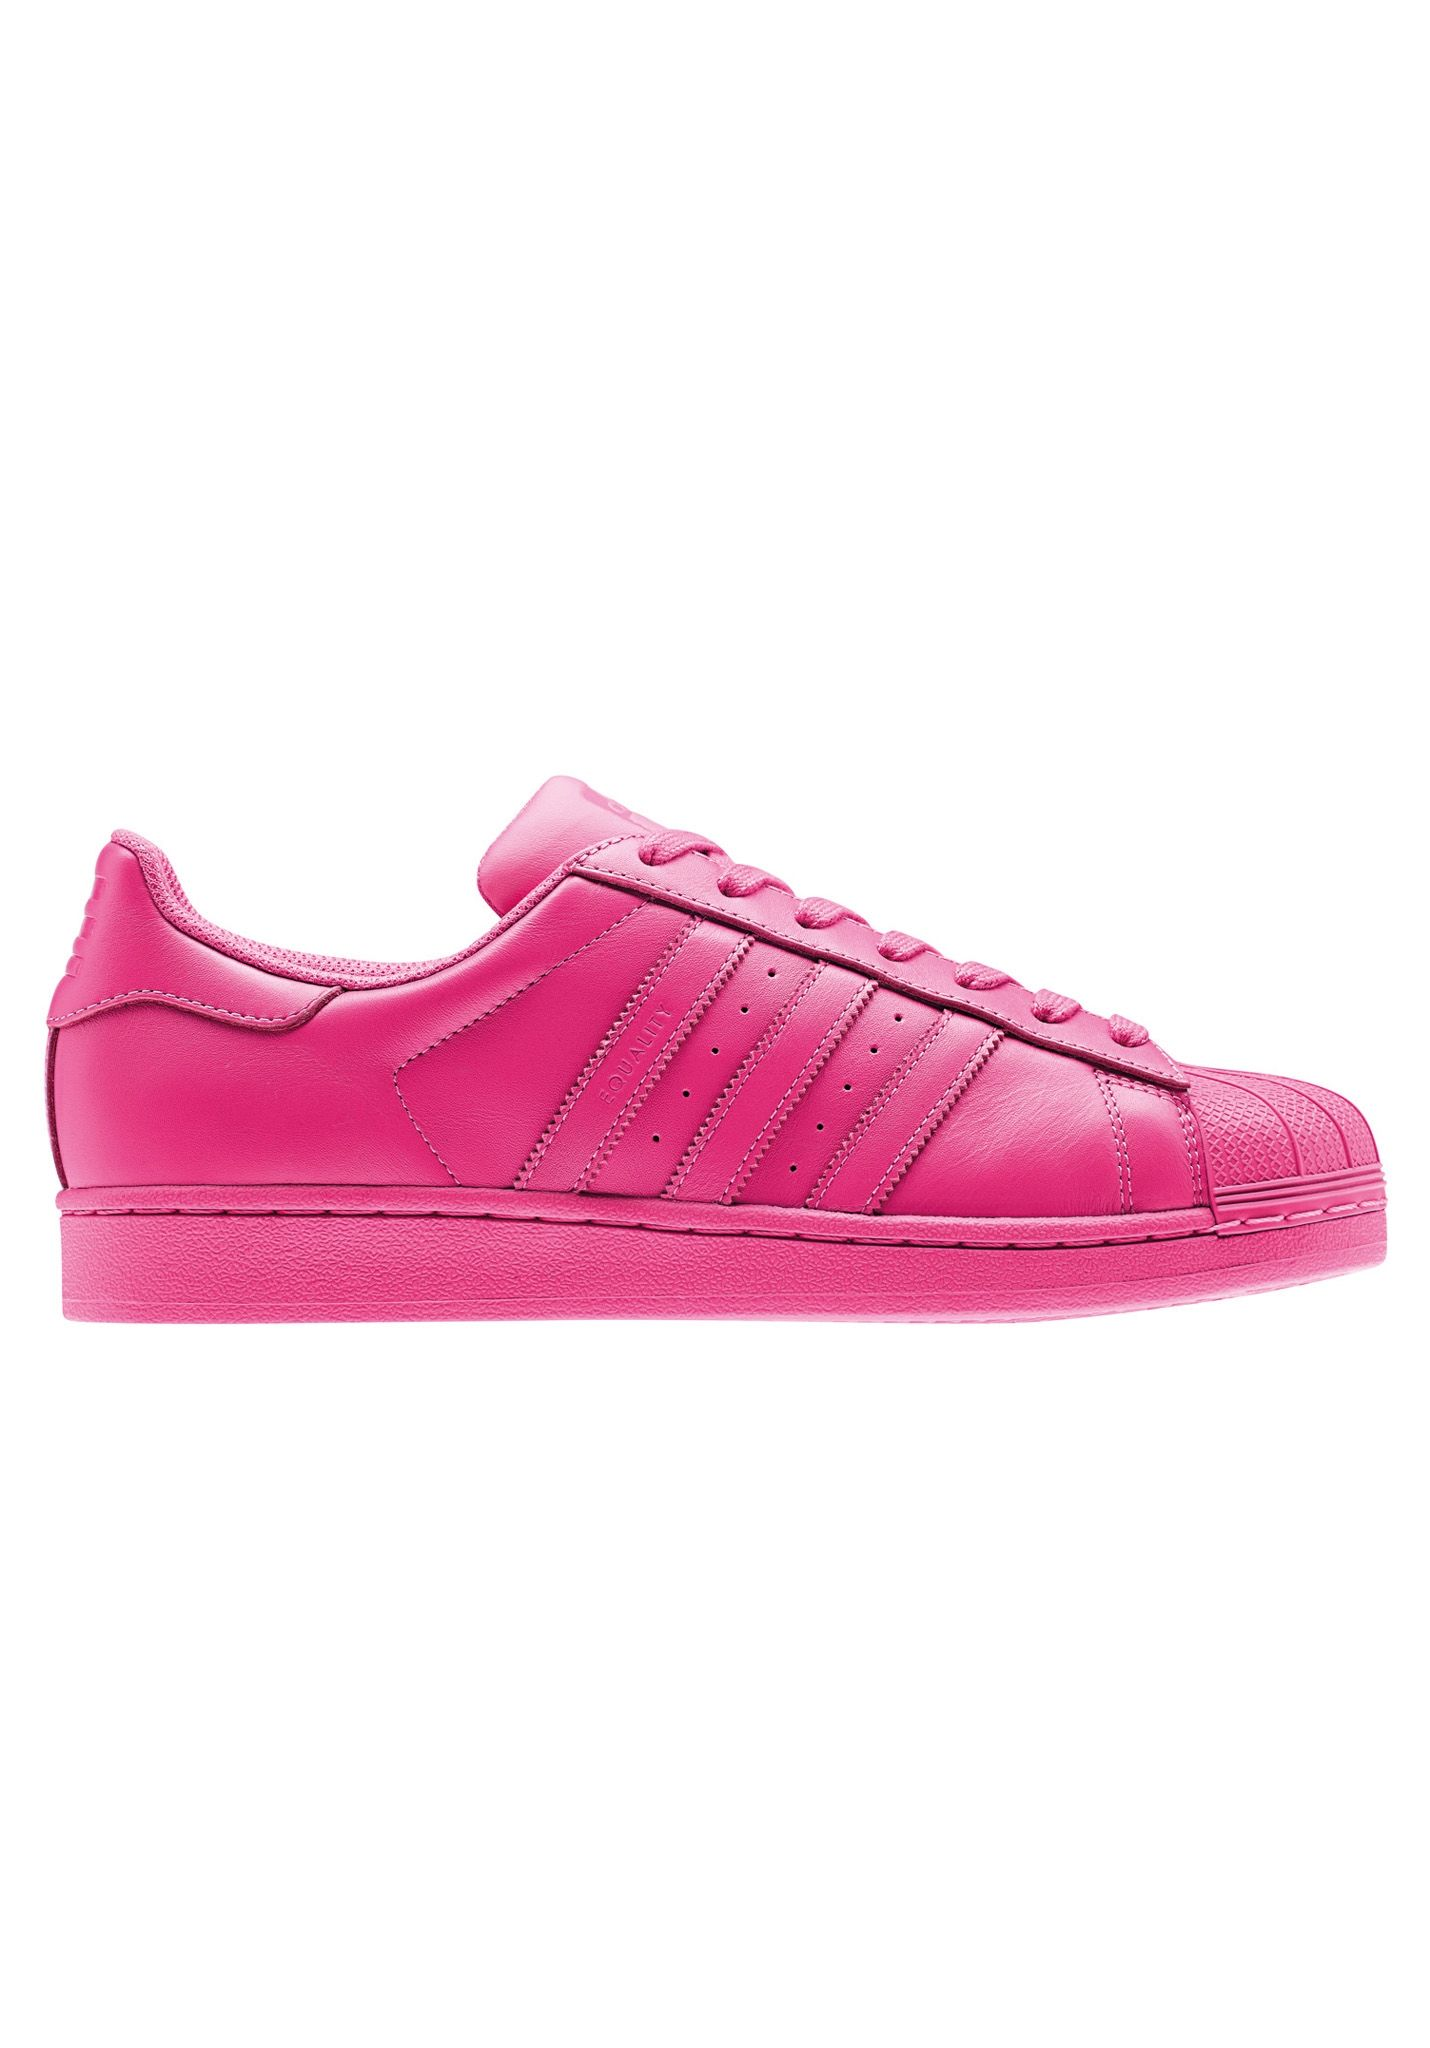 Adidas Superstar Supercolor Vendita